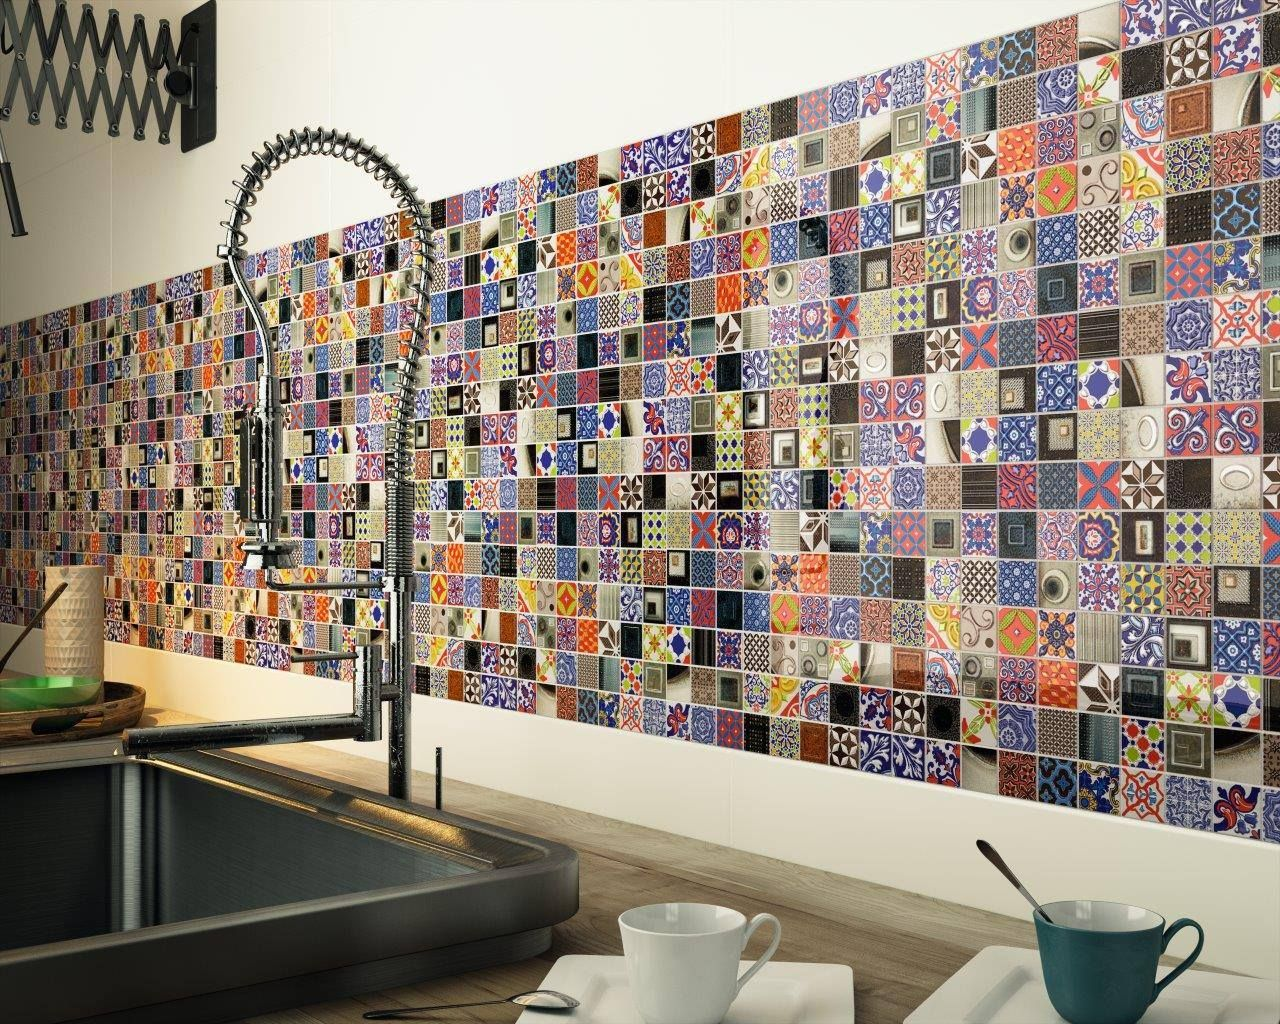 Kitchen Tiles Melbourne dune tile, kitchen backsplash tile, kitchen design, kitchens